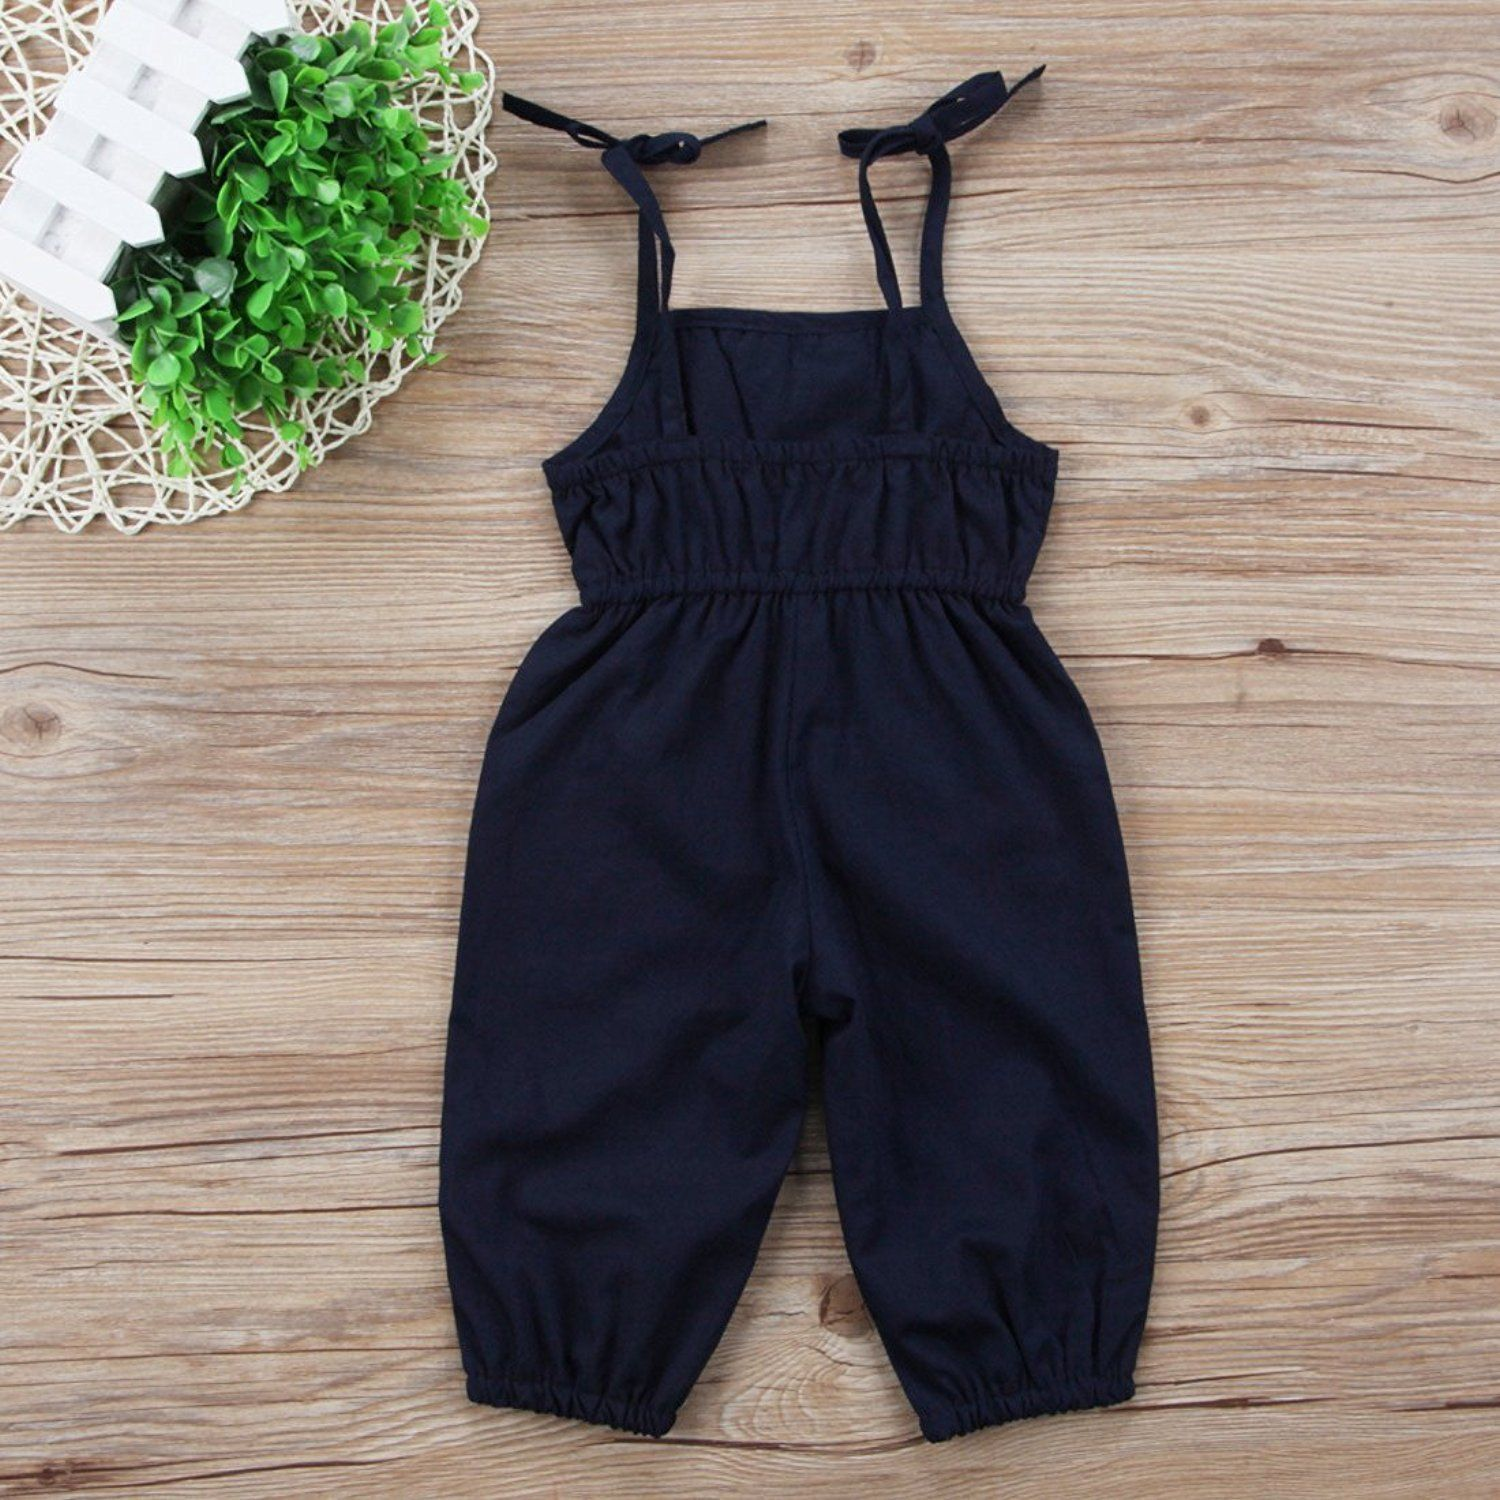 d308743a4790 BELS Kids Baby Girls Jumpsuit Rose Embroidery Romper Sleeveless Halter  Ruffle Outfit 23Y -- Read more reviews of the product by visiting the link  on the ...